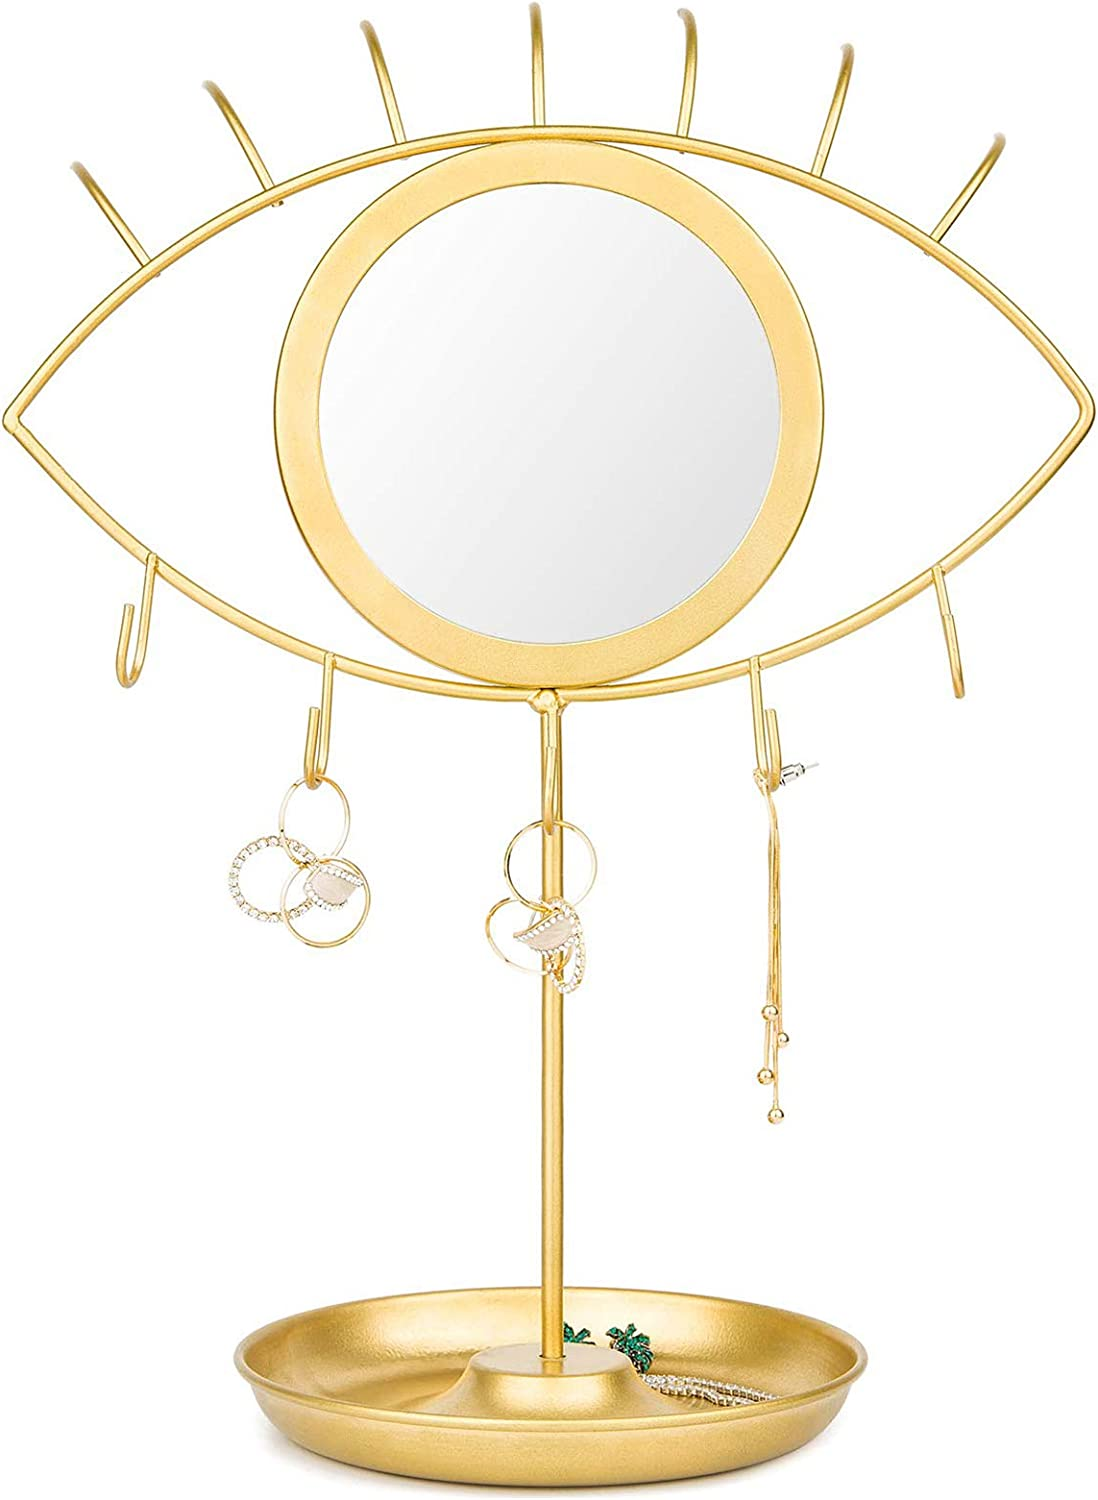 CoolXuan Makeup Mirror Eye Shaped Vanity Mirror with Jewelry Tray Earrings Holder Dresser Tabletop Detachable Cosmetic Mirror,Golden Boho Decorative